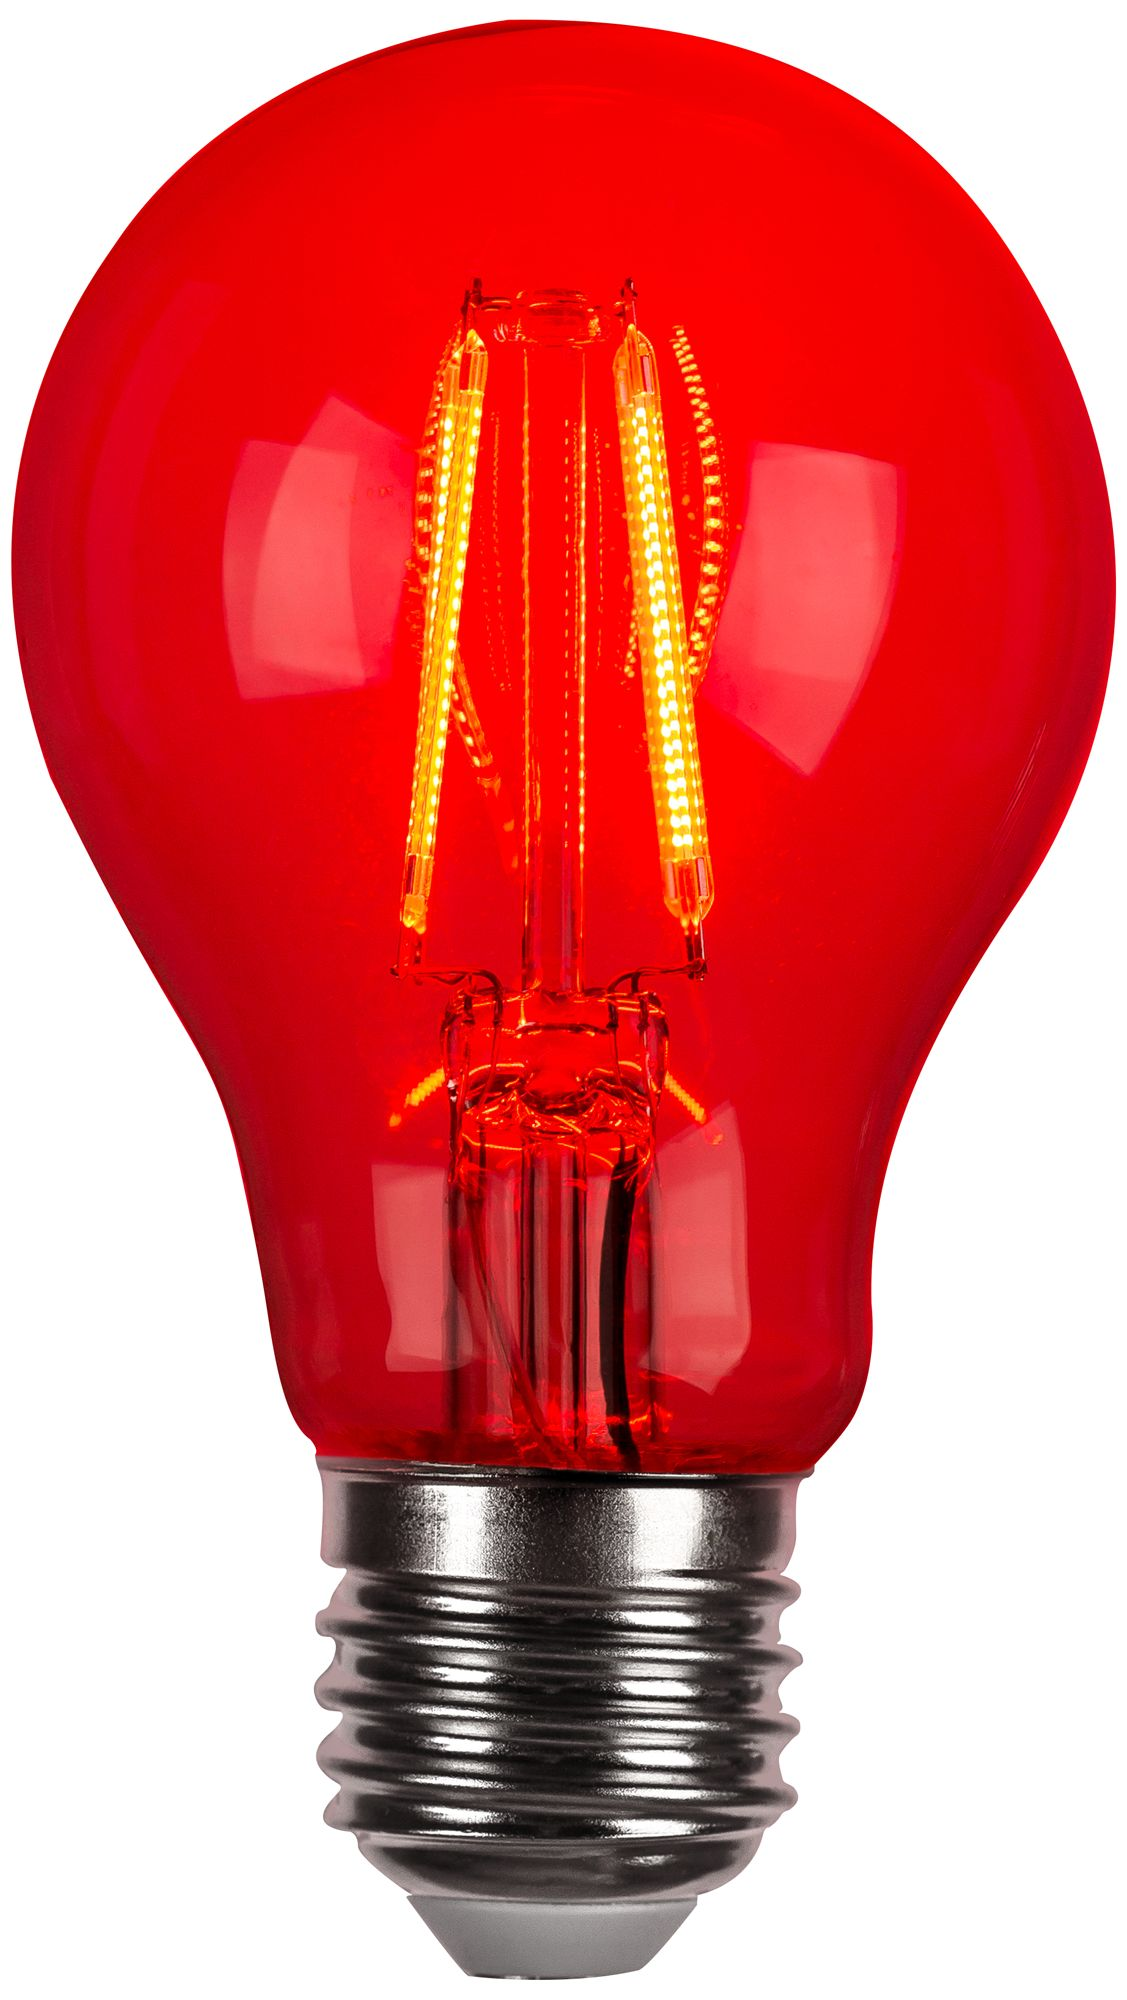 40W Equivalent Tesler Red 4W LED Dimmable Standard  sc 1 st  L&s Plus & 75W Equivalent Adjustable-Angle 8W LED Dimmable Standard - #7V915 ... azcodes.com